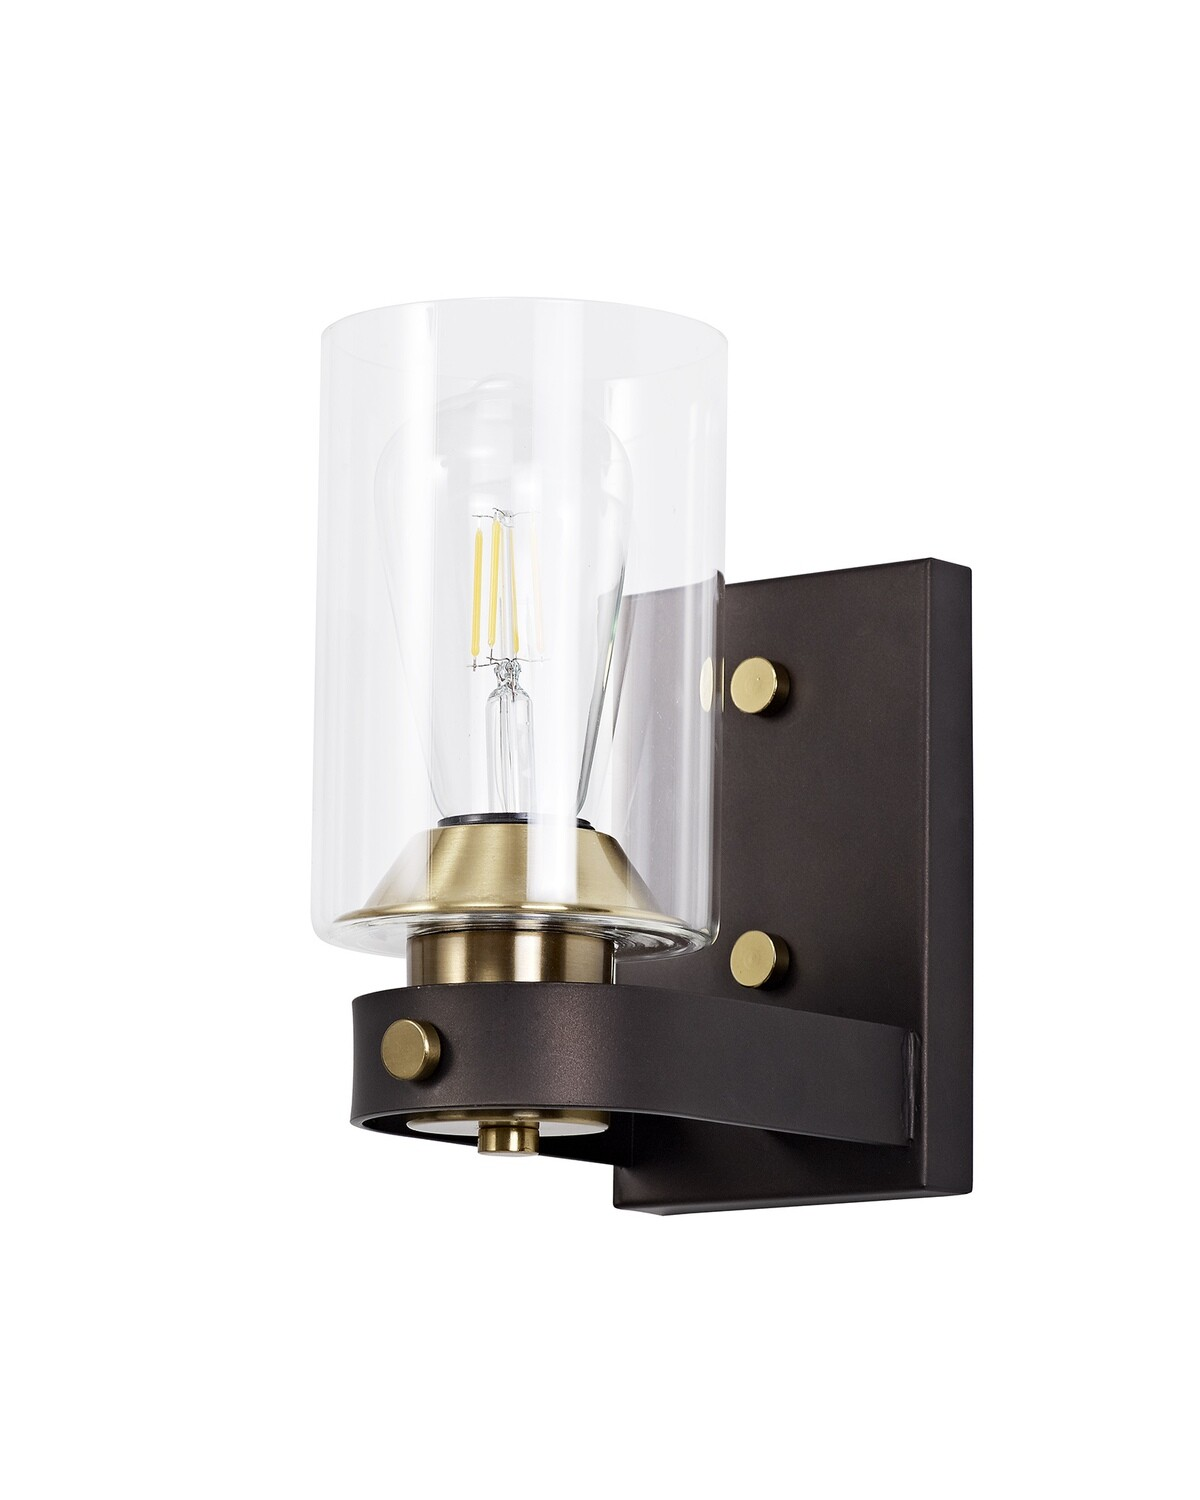 Marini Wall Lamp 1 Light E27, Brown Oxide/Bronze With Clear Glass Shades